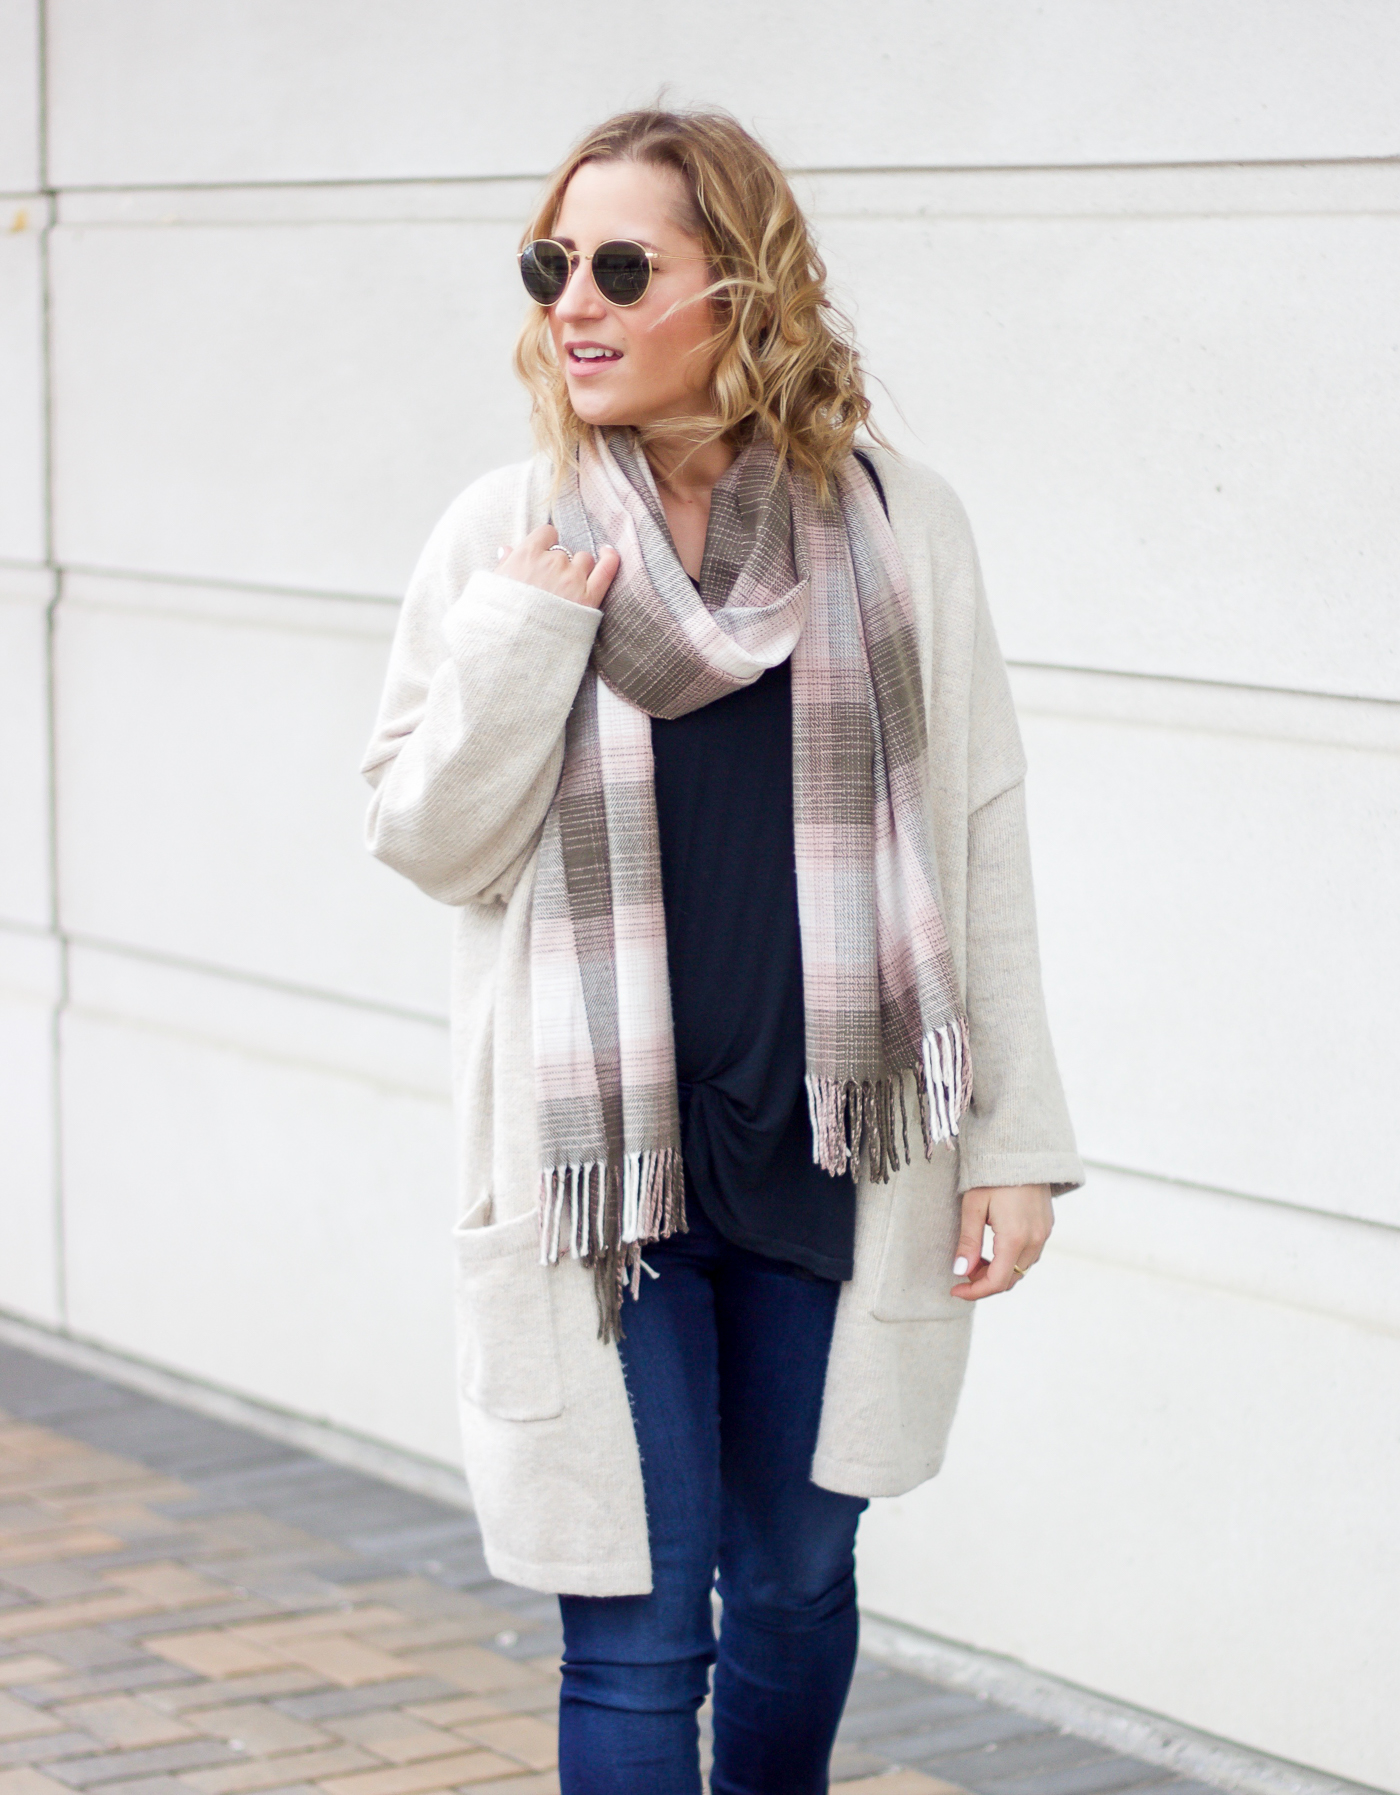 Toronto fashion blogger is wearing round Ray-Ban sunglasses with a simple outfit, featuring a cardigan from Gap and jeans